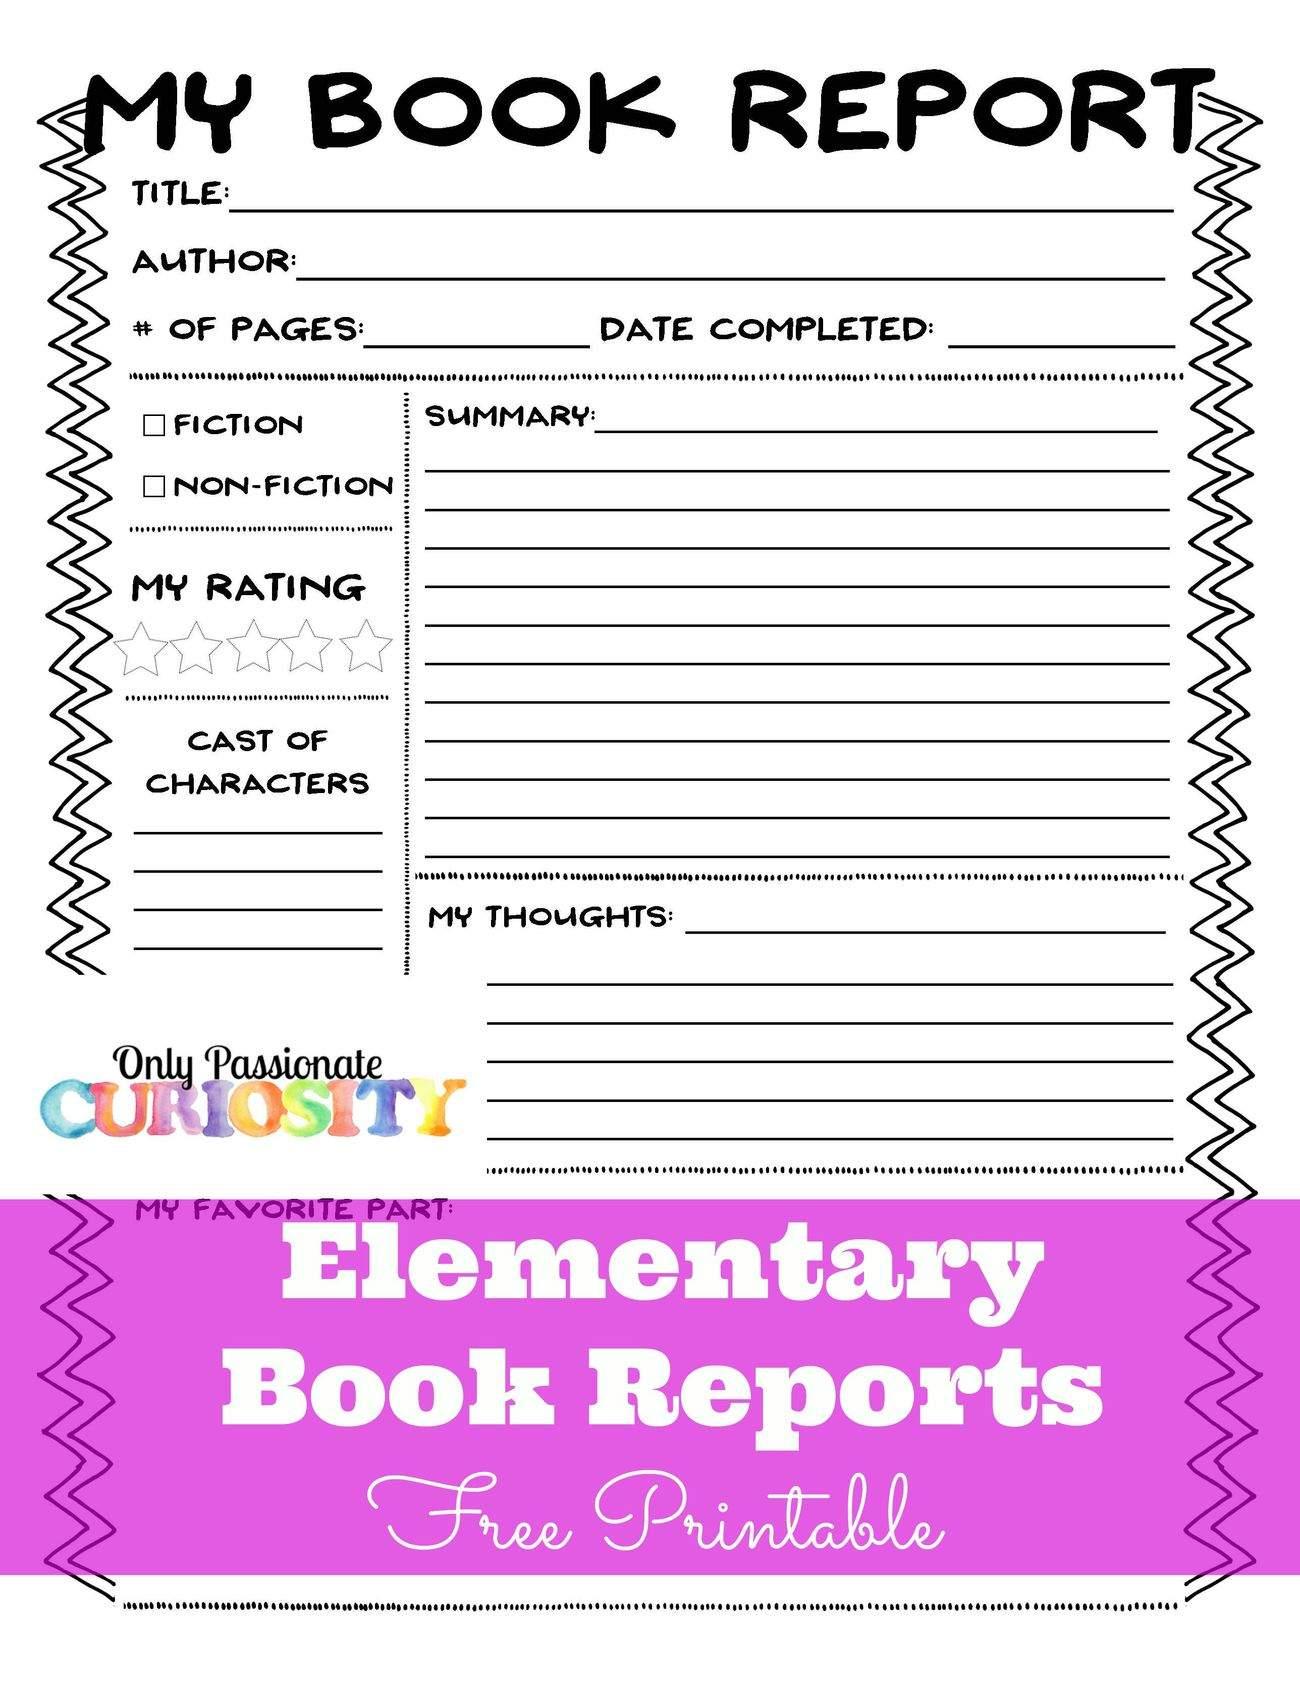 book report elementary students What is a book report a book report is typically given as an assignment to students in elementary and middle school students fill out a form answering basic.